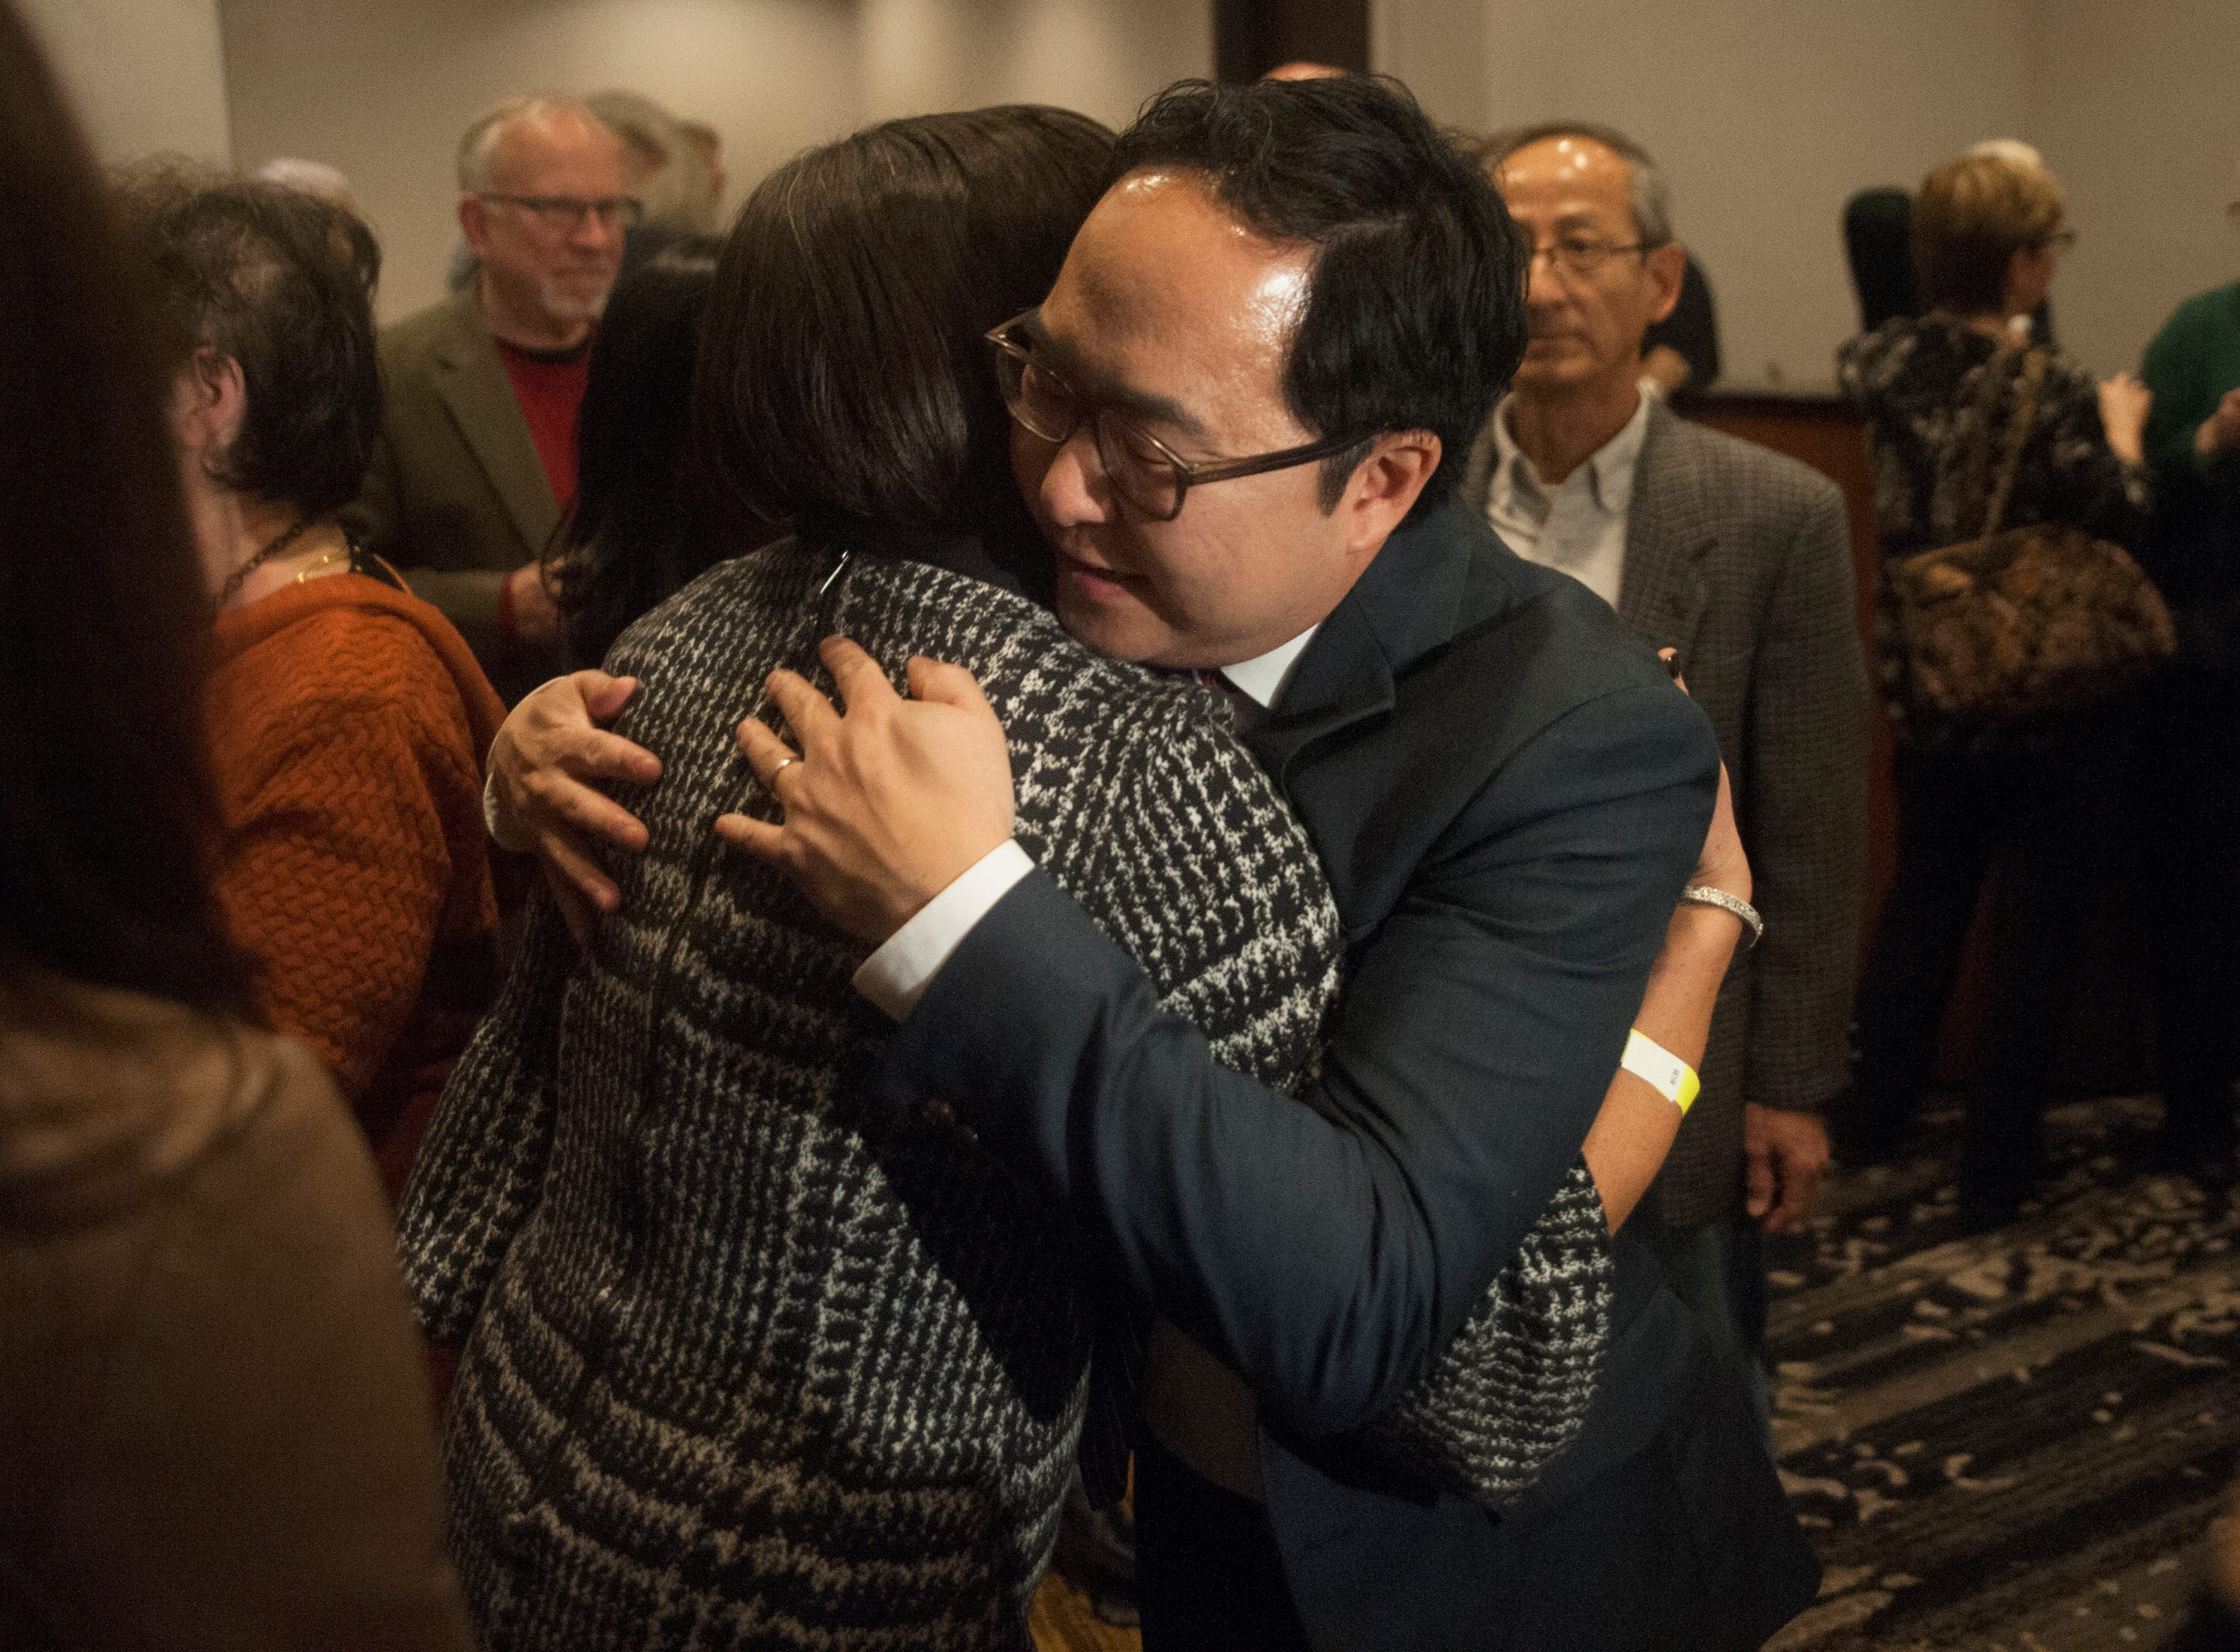 Democratic 3rd Congressional District candidate Andy Kim greets supporters at his election night headquarters,  the Westin Mount Laurel in Mount Laurel, NJ, on Tuesday, November 6, 2018.